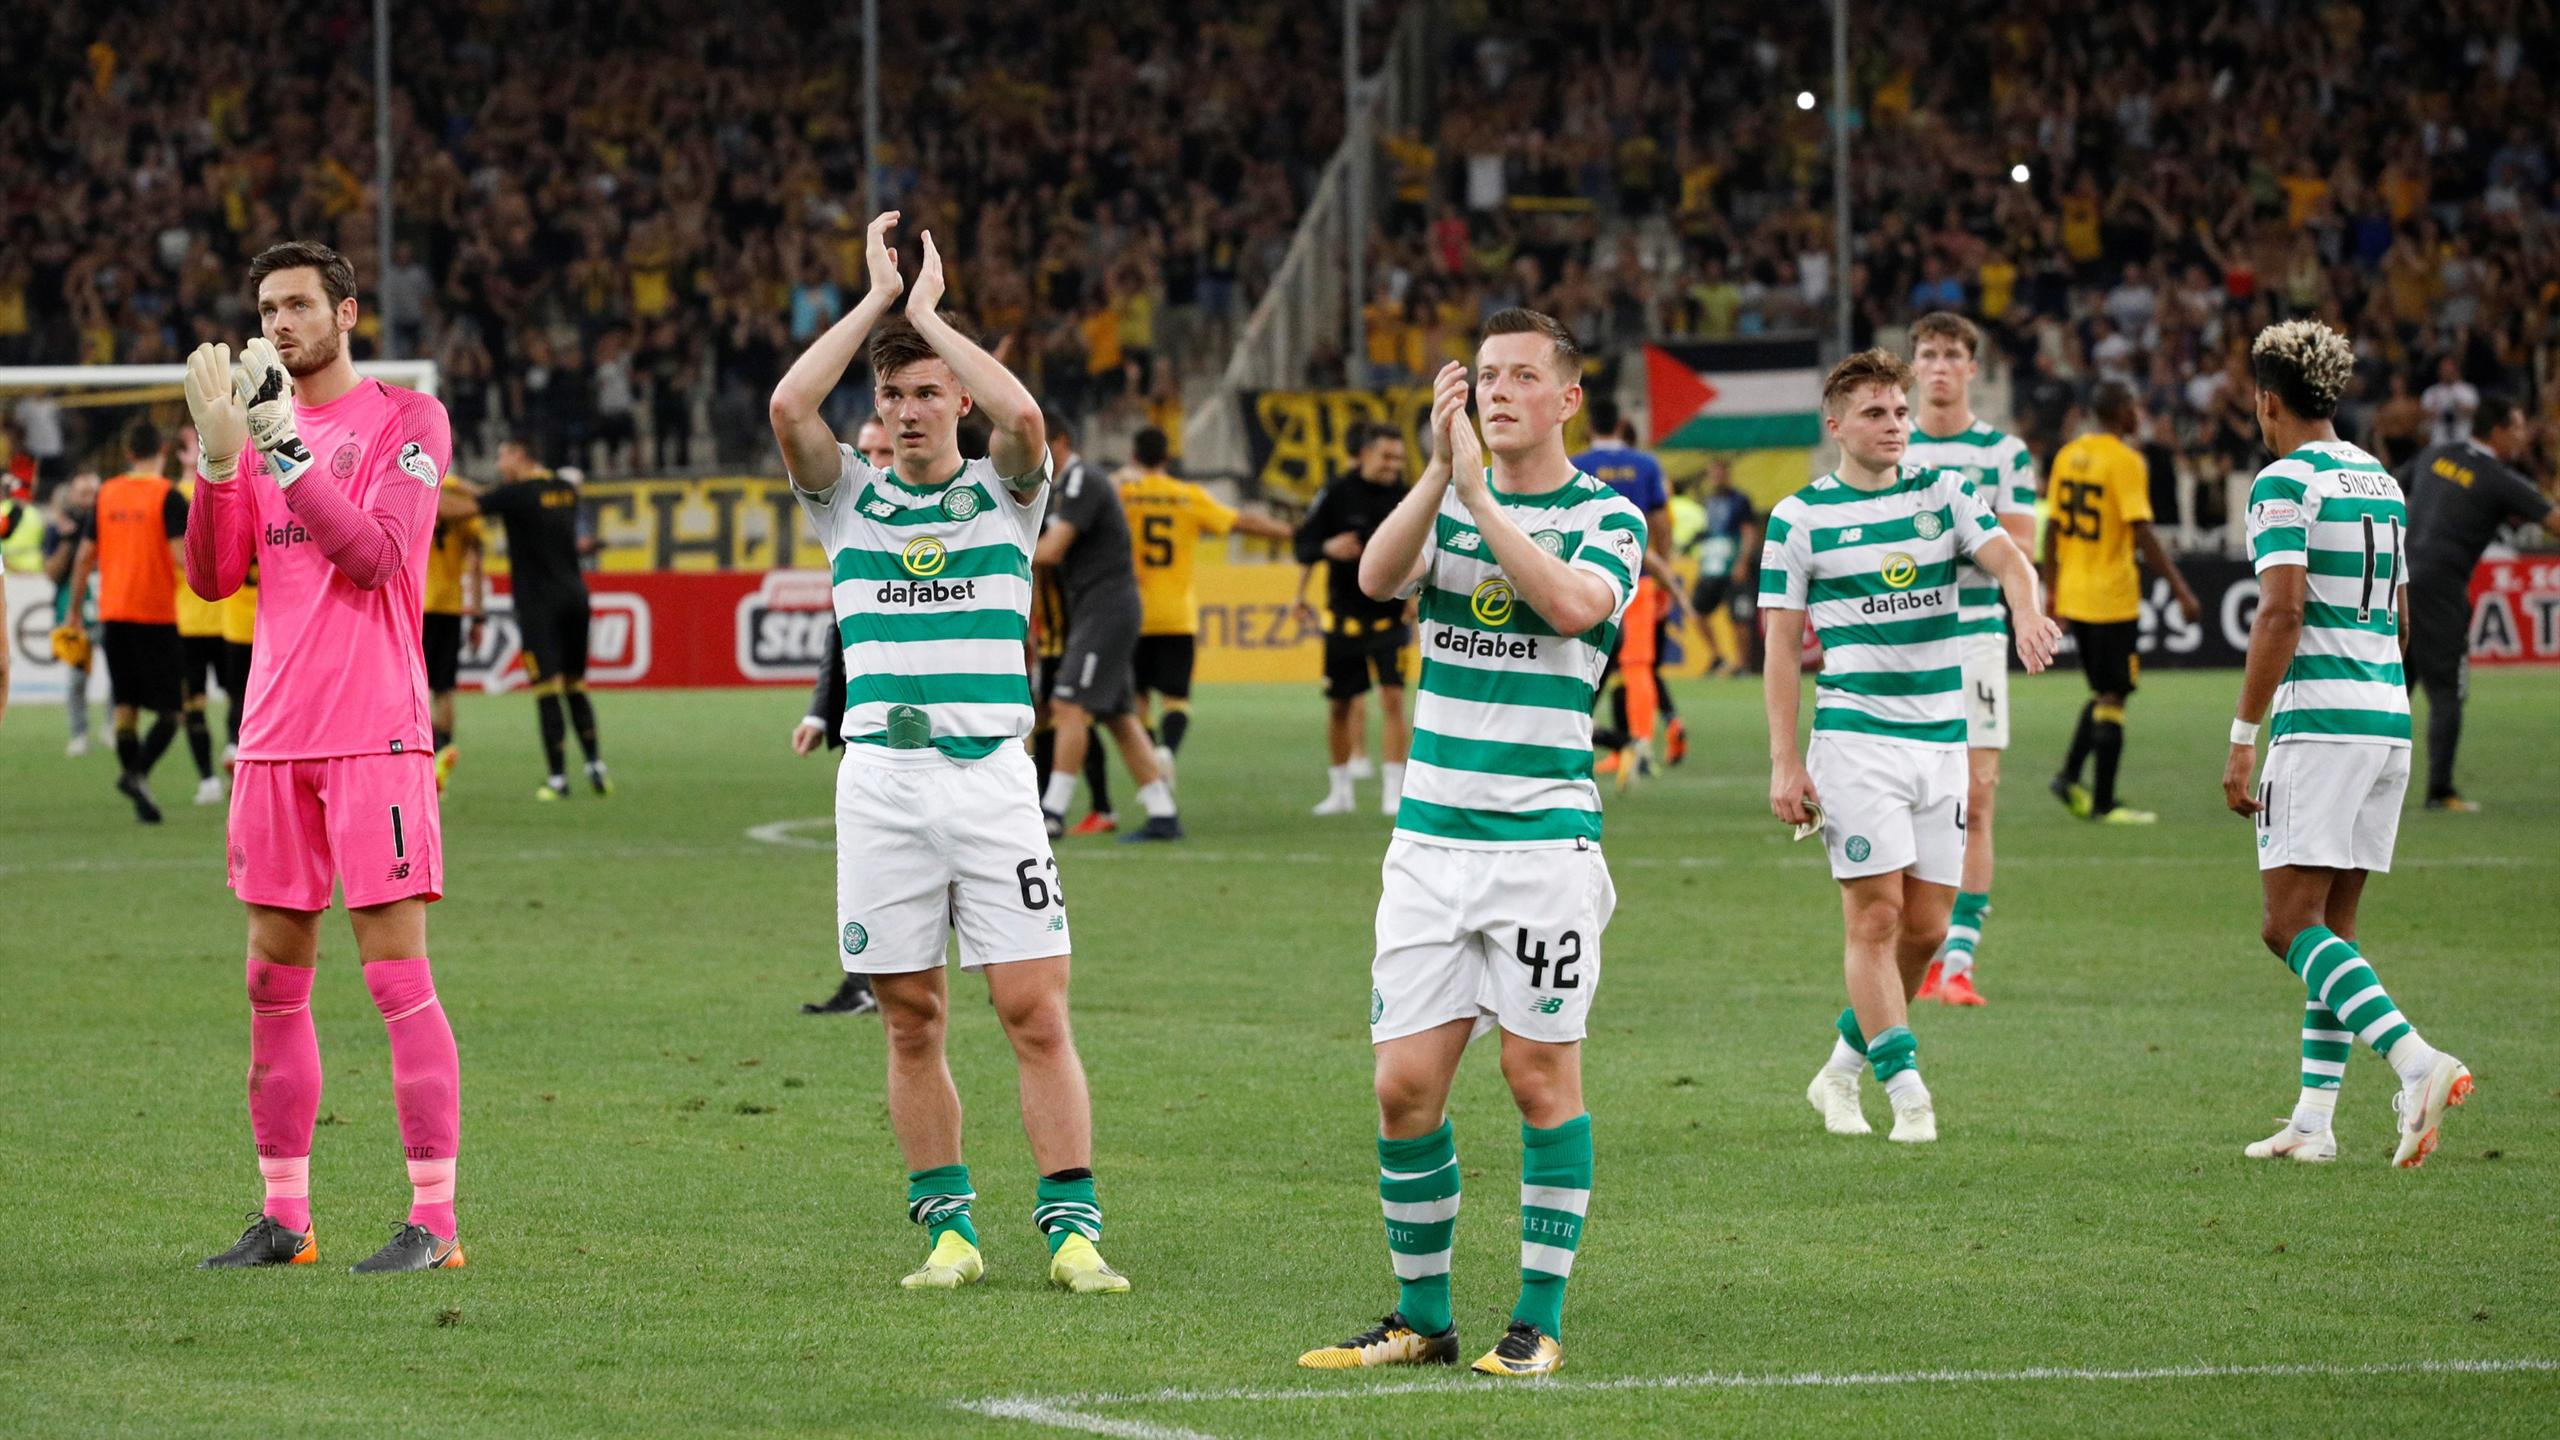 Celtic's Callum McGregor and team mates applaud fans after the match